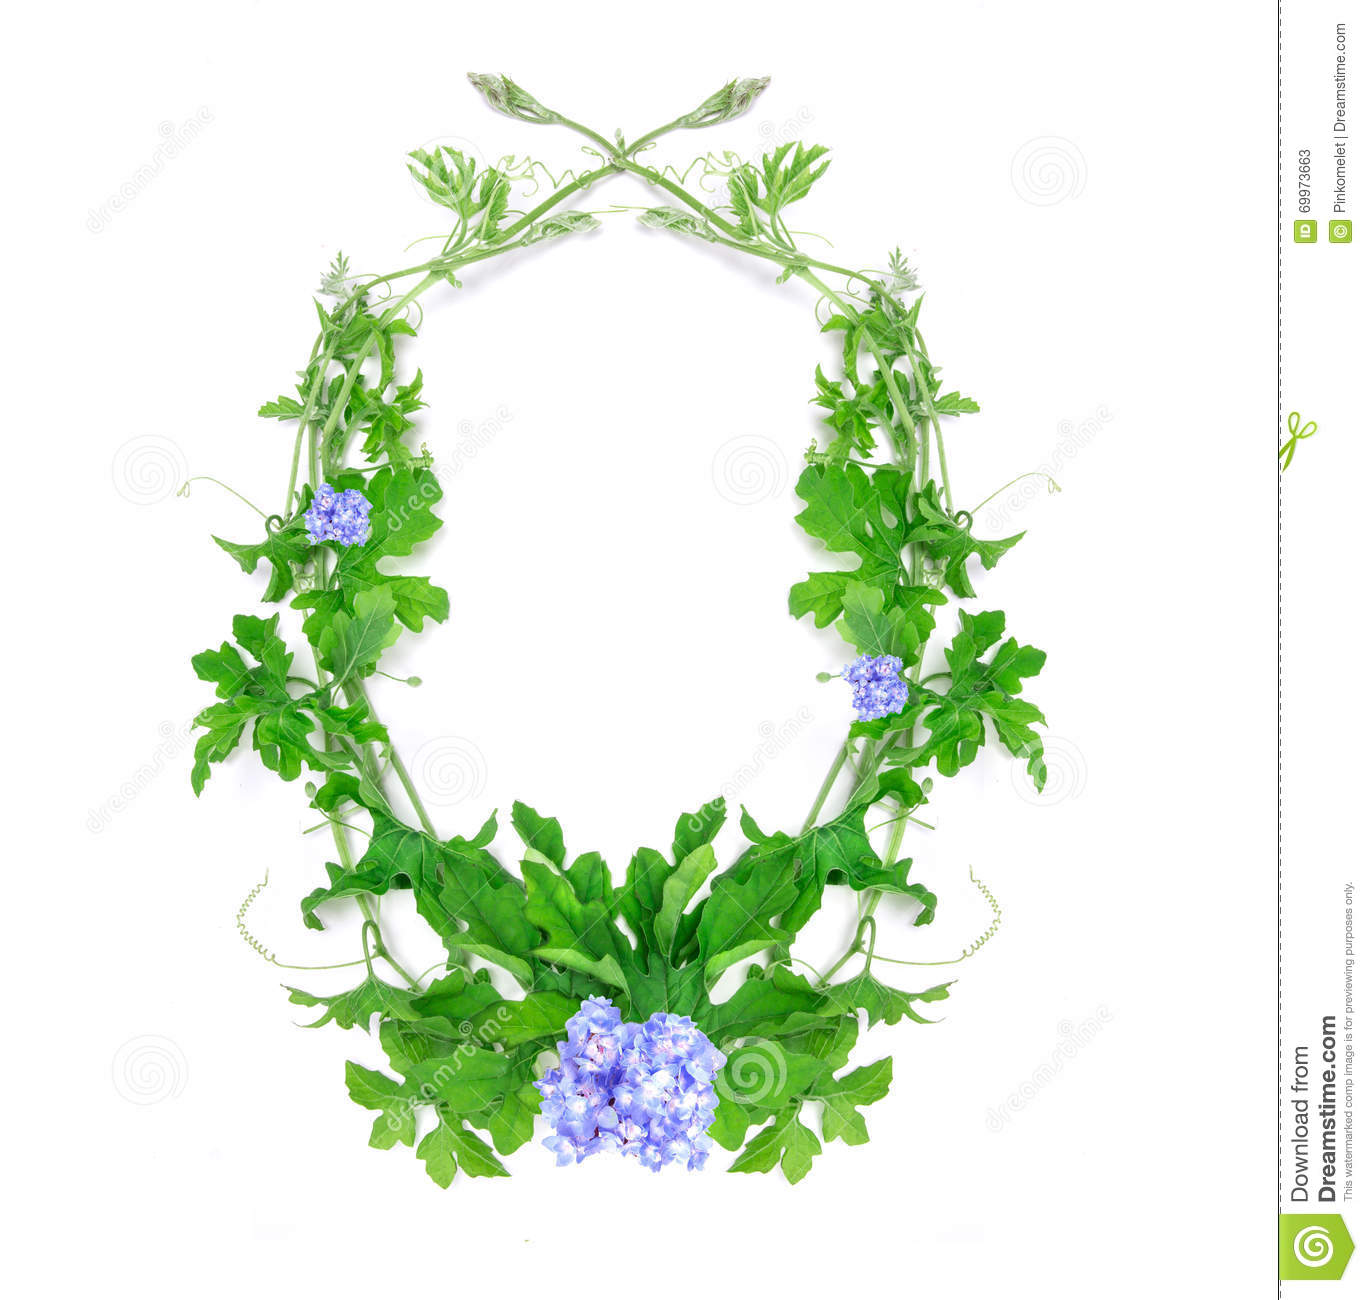 Green creeping plant leaf with blue flower arrangement as frame download green creeping plant leaf with blue flower arrangement as frame stock image image of izmirmasajfo